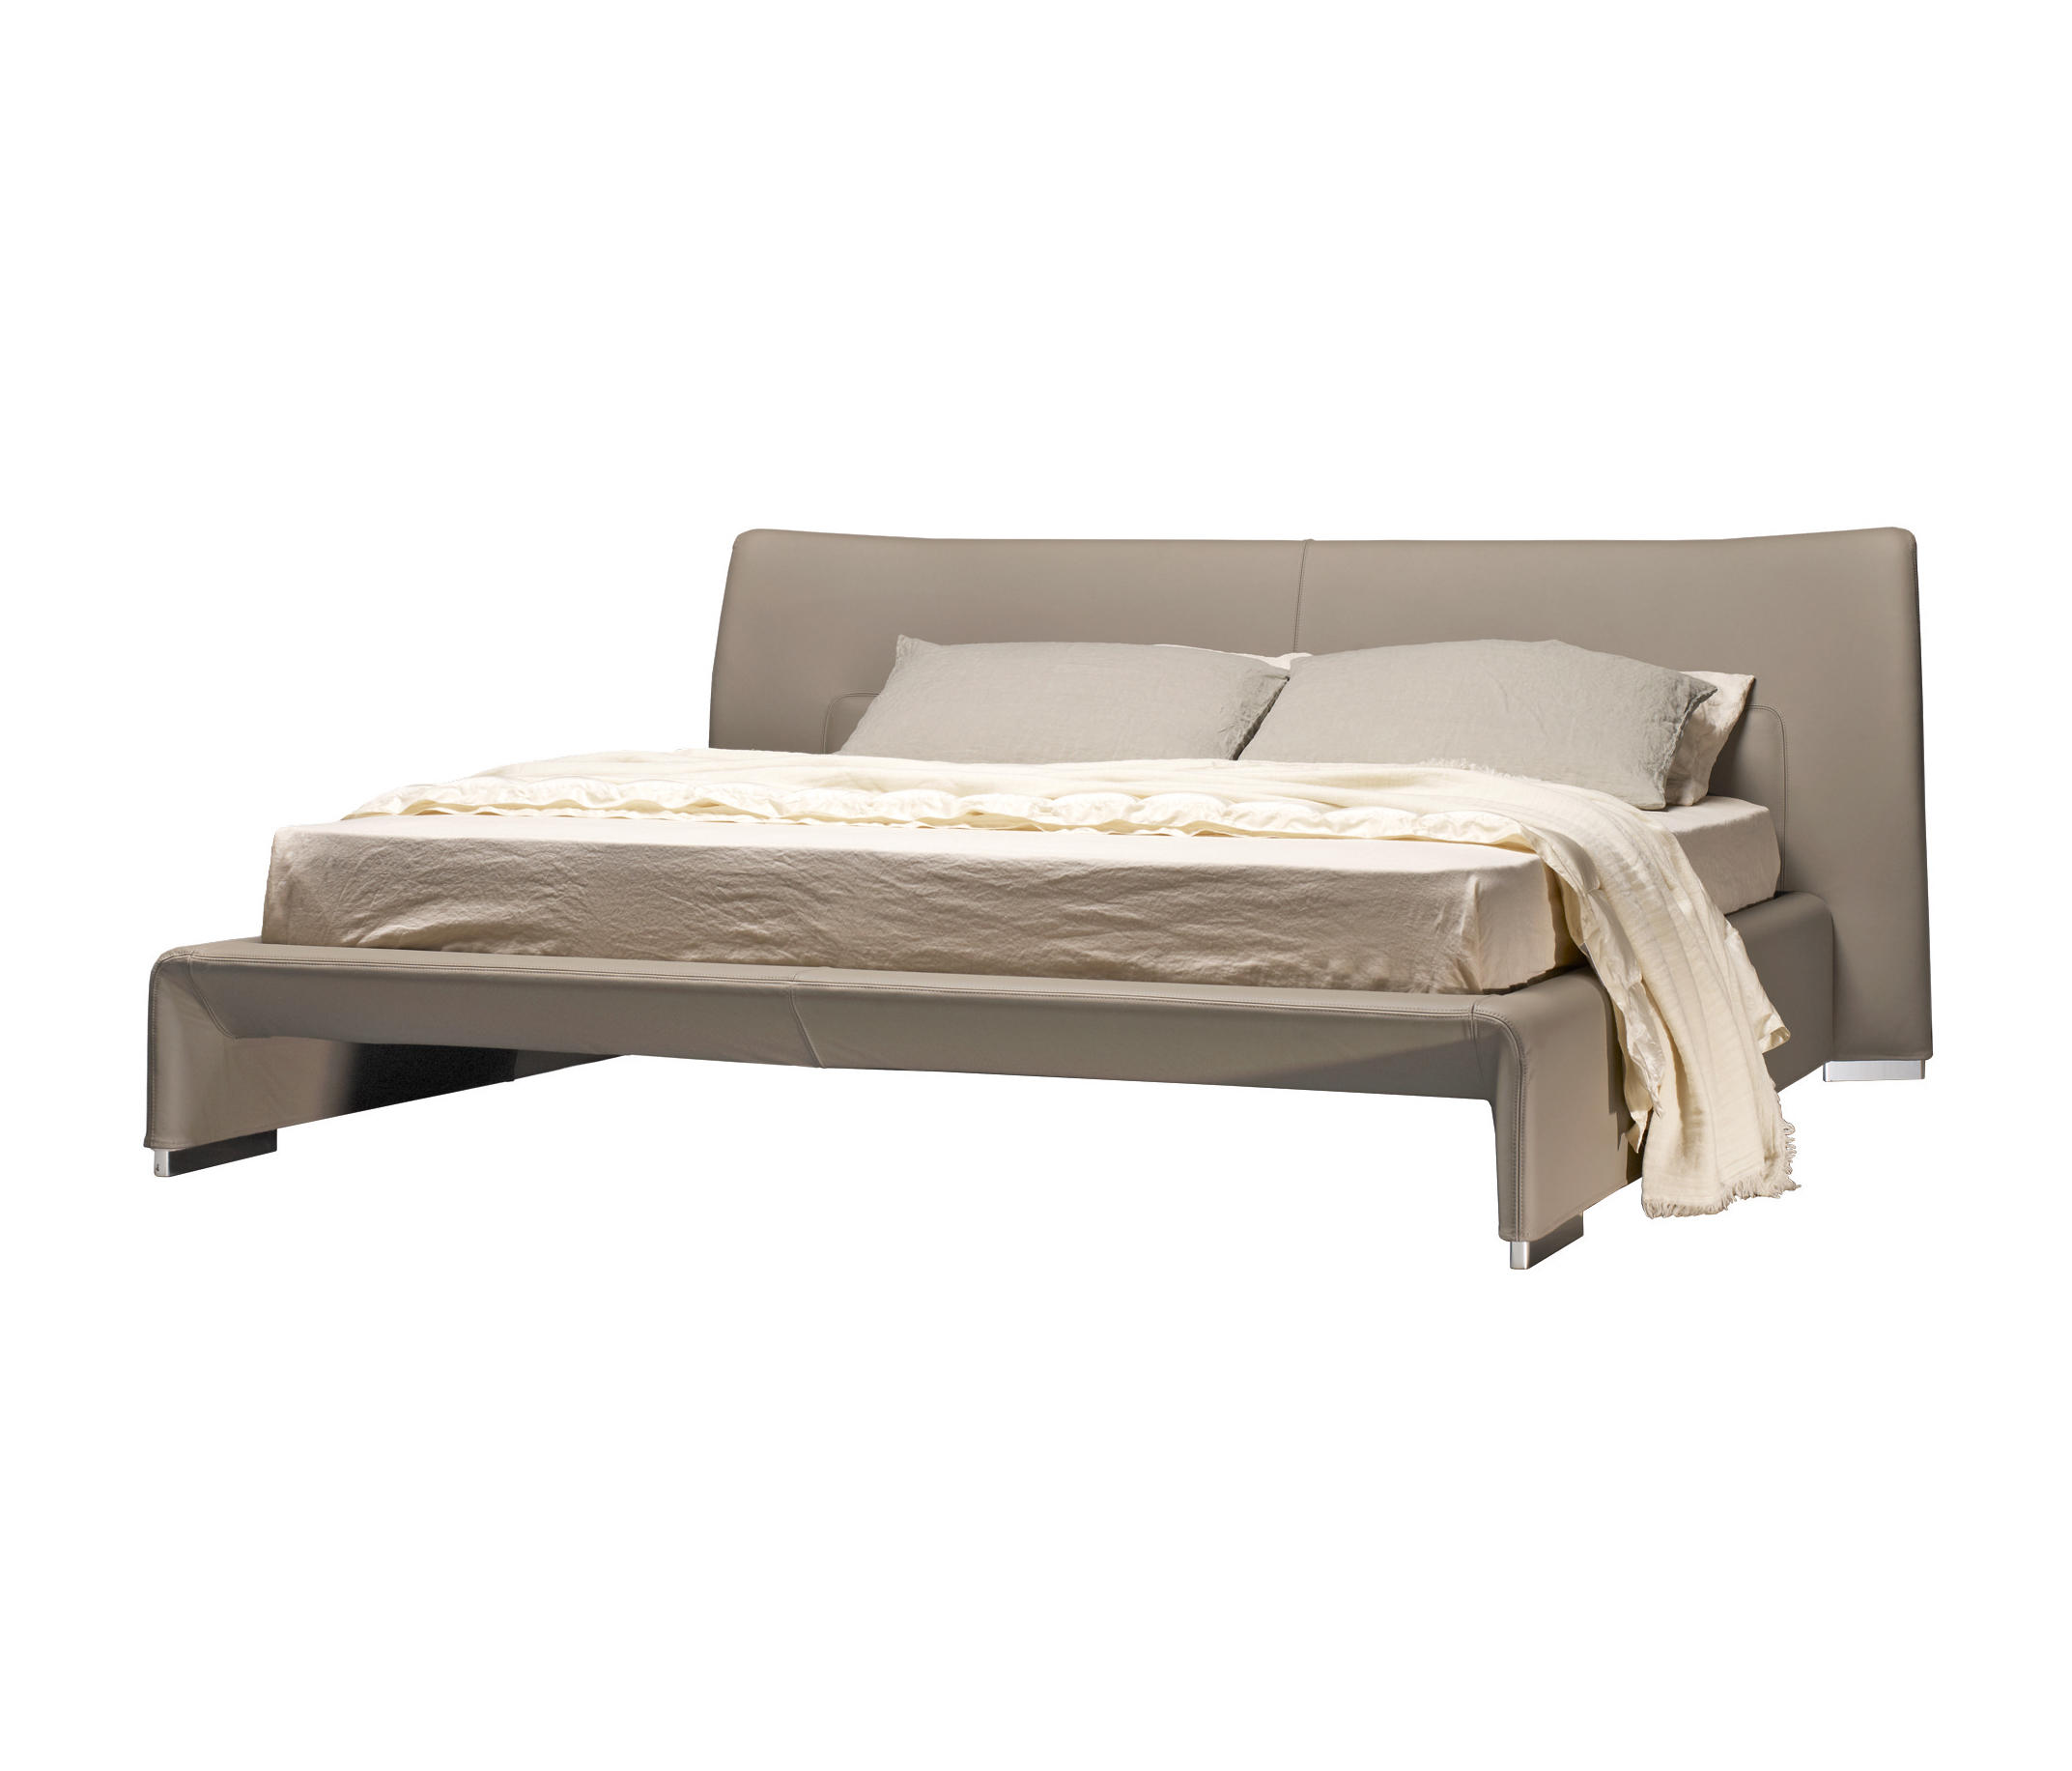 Glove bed camas de molteni c architonic - Letto wish molteni ...